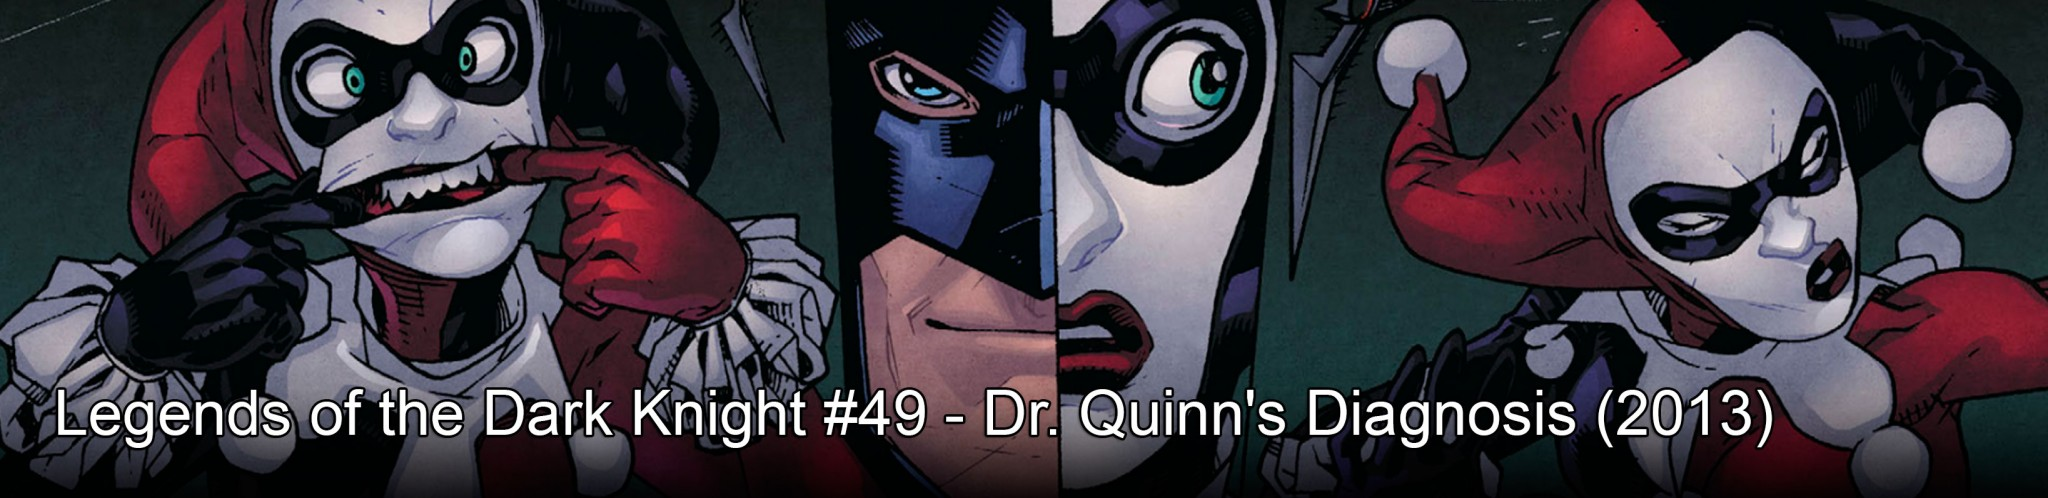 Legends-of-the-Dark-Knight-#49---Dr.-Quinn's-Diagnosis